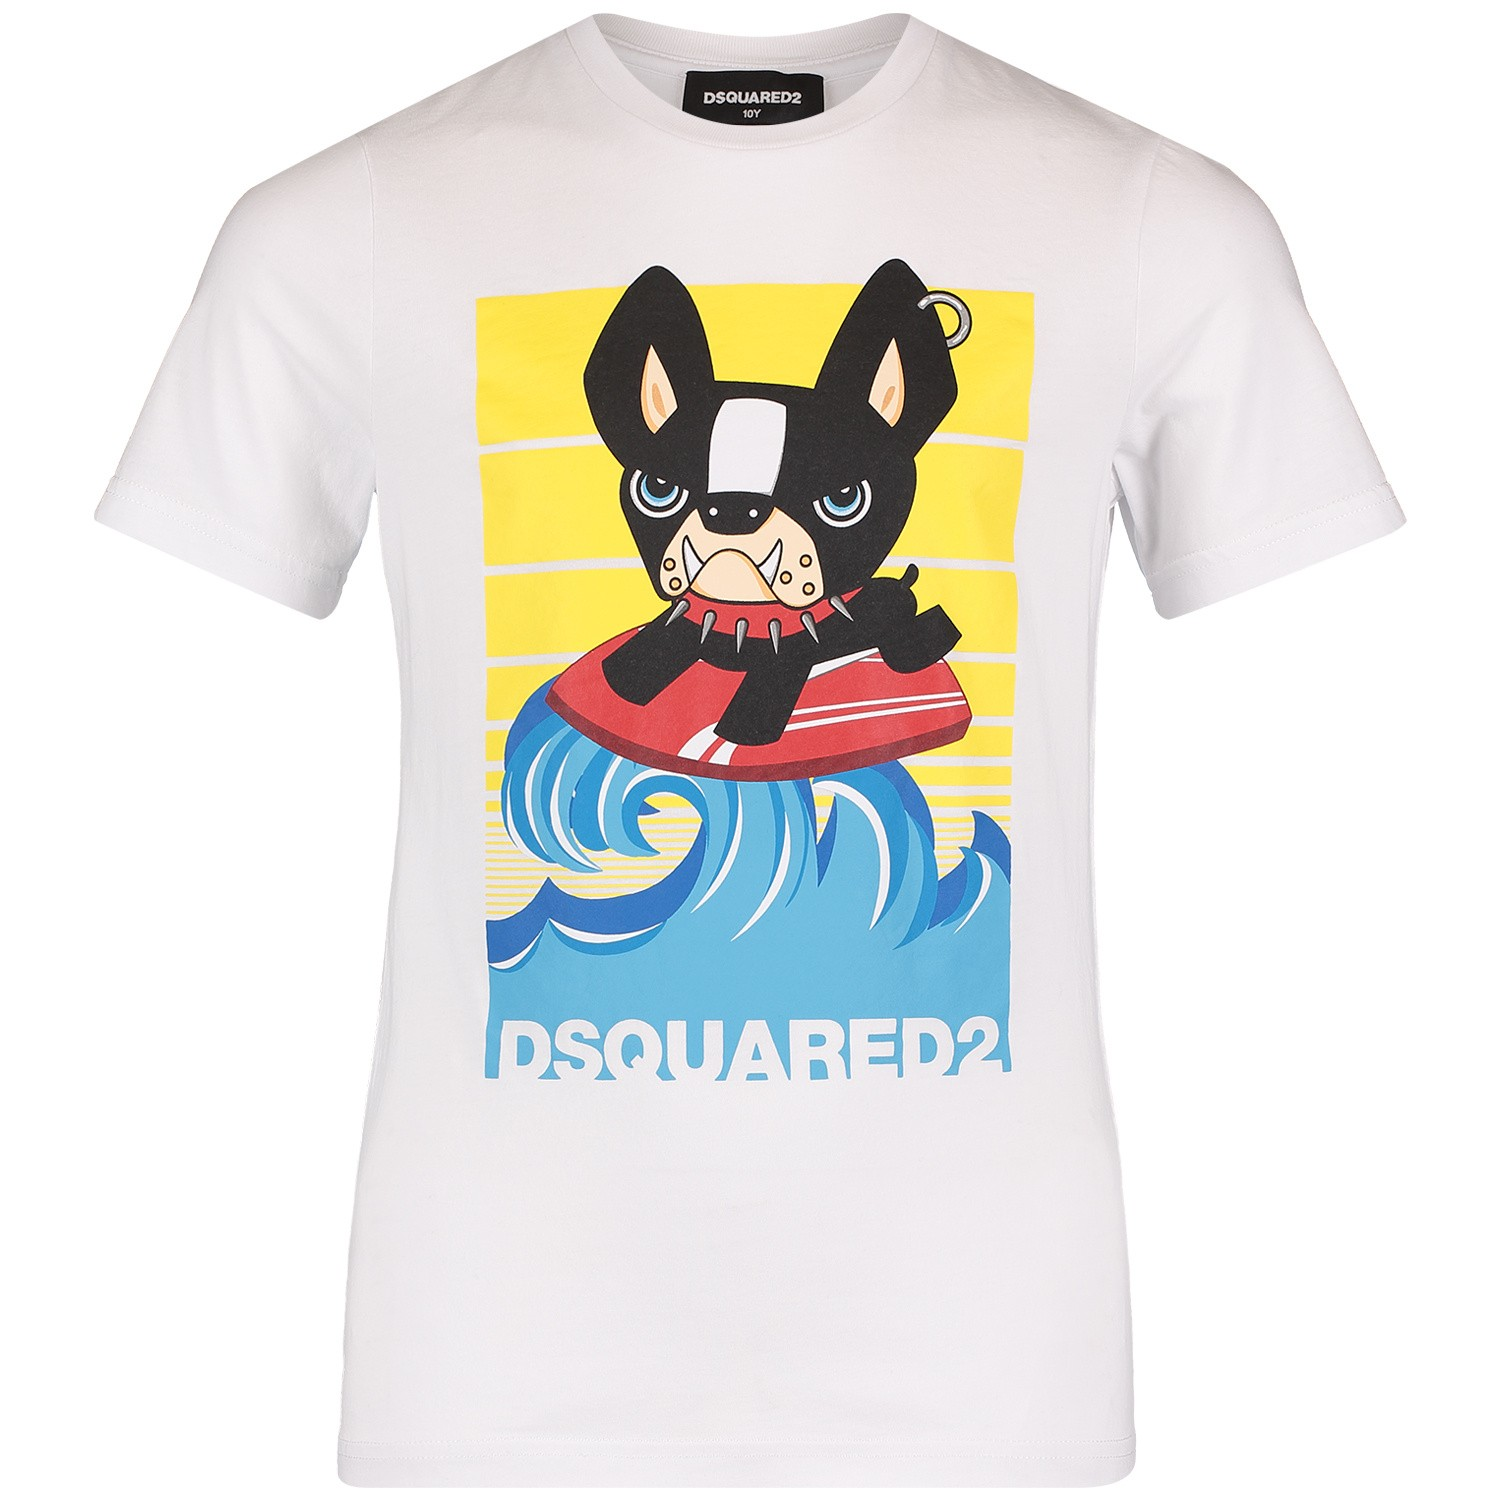 Afbeelding van Dsquared2 DQ03A1 kinder t-shirt wit